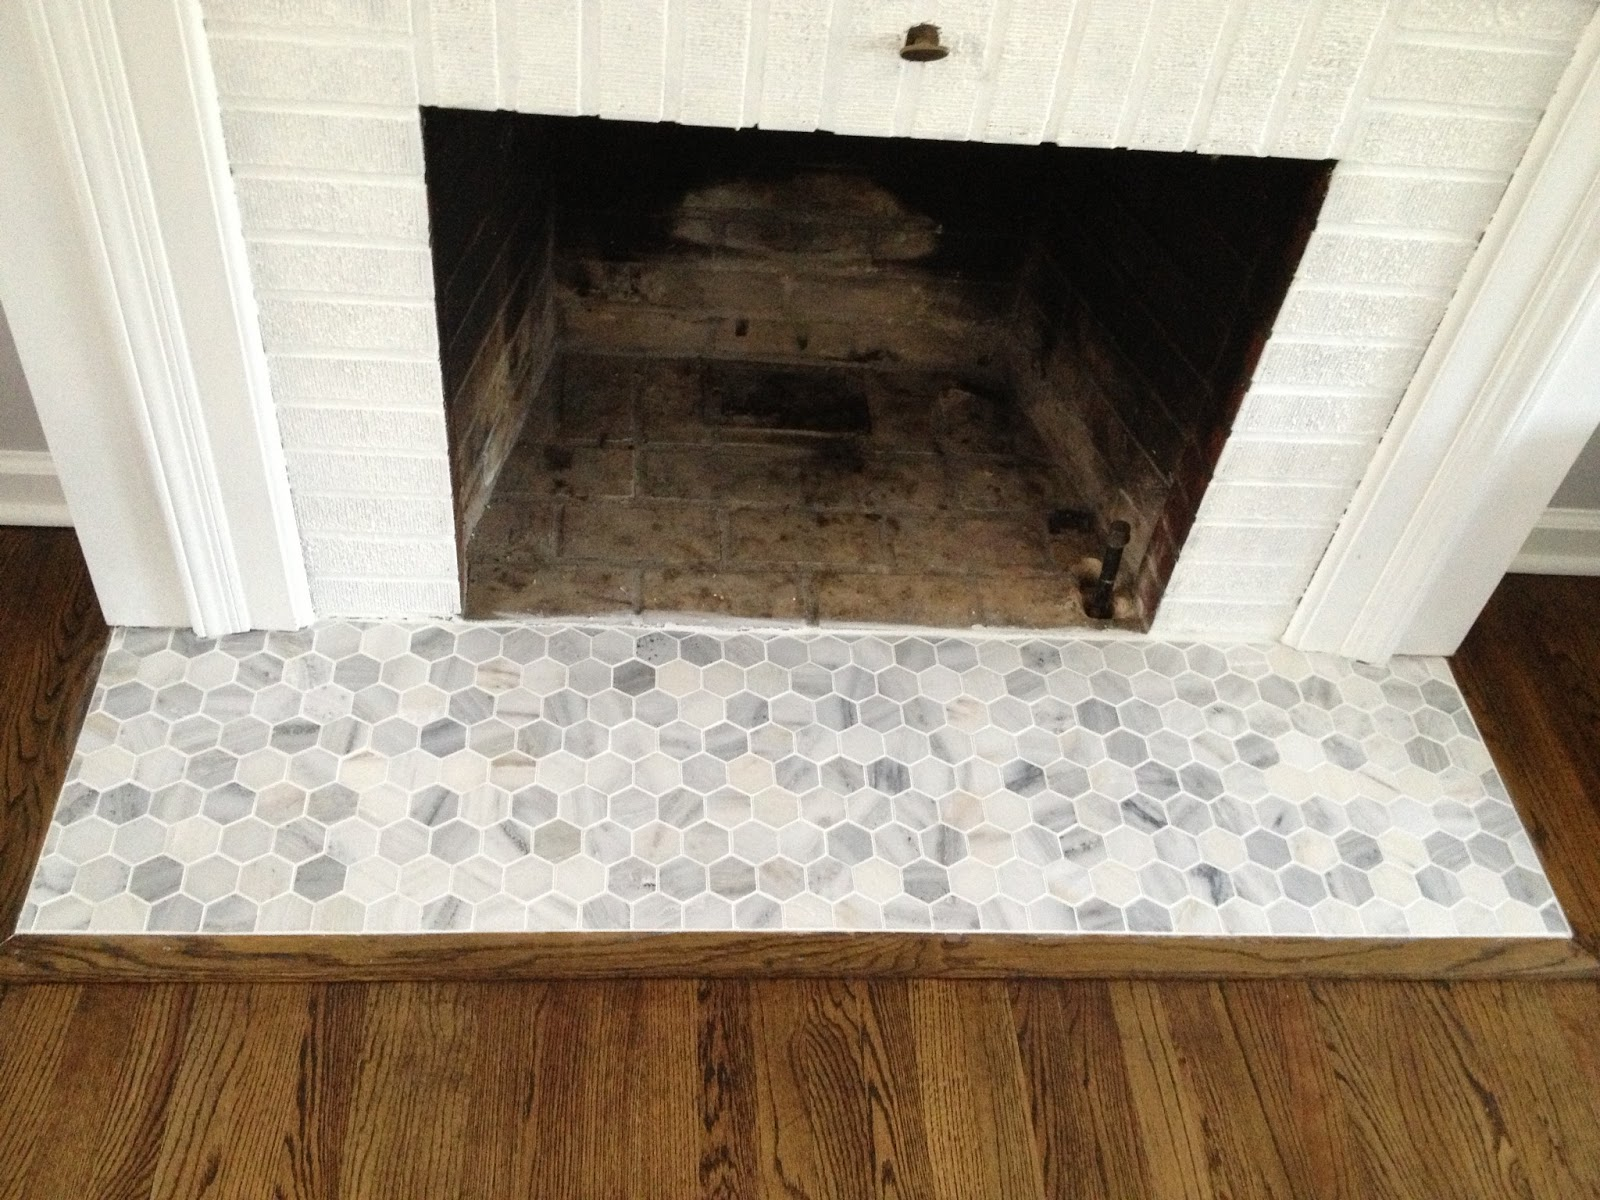 New Retro Ranch Reno: Operation Hearth Re-Tile - Grouted Goodness!! KM34